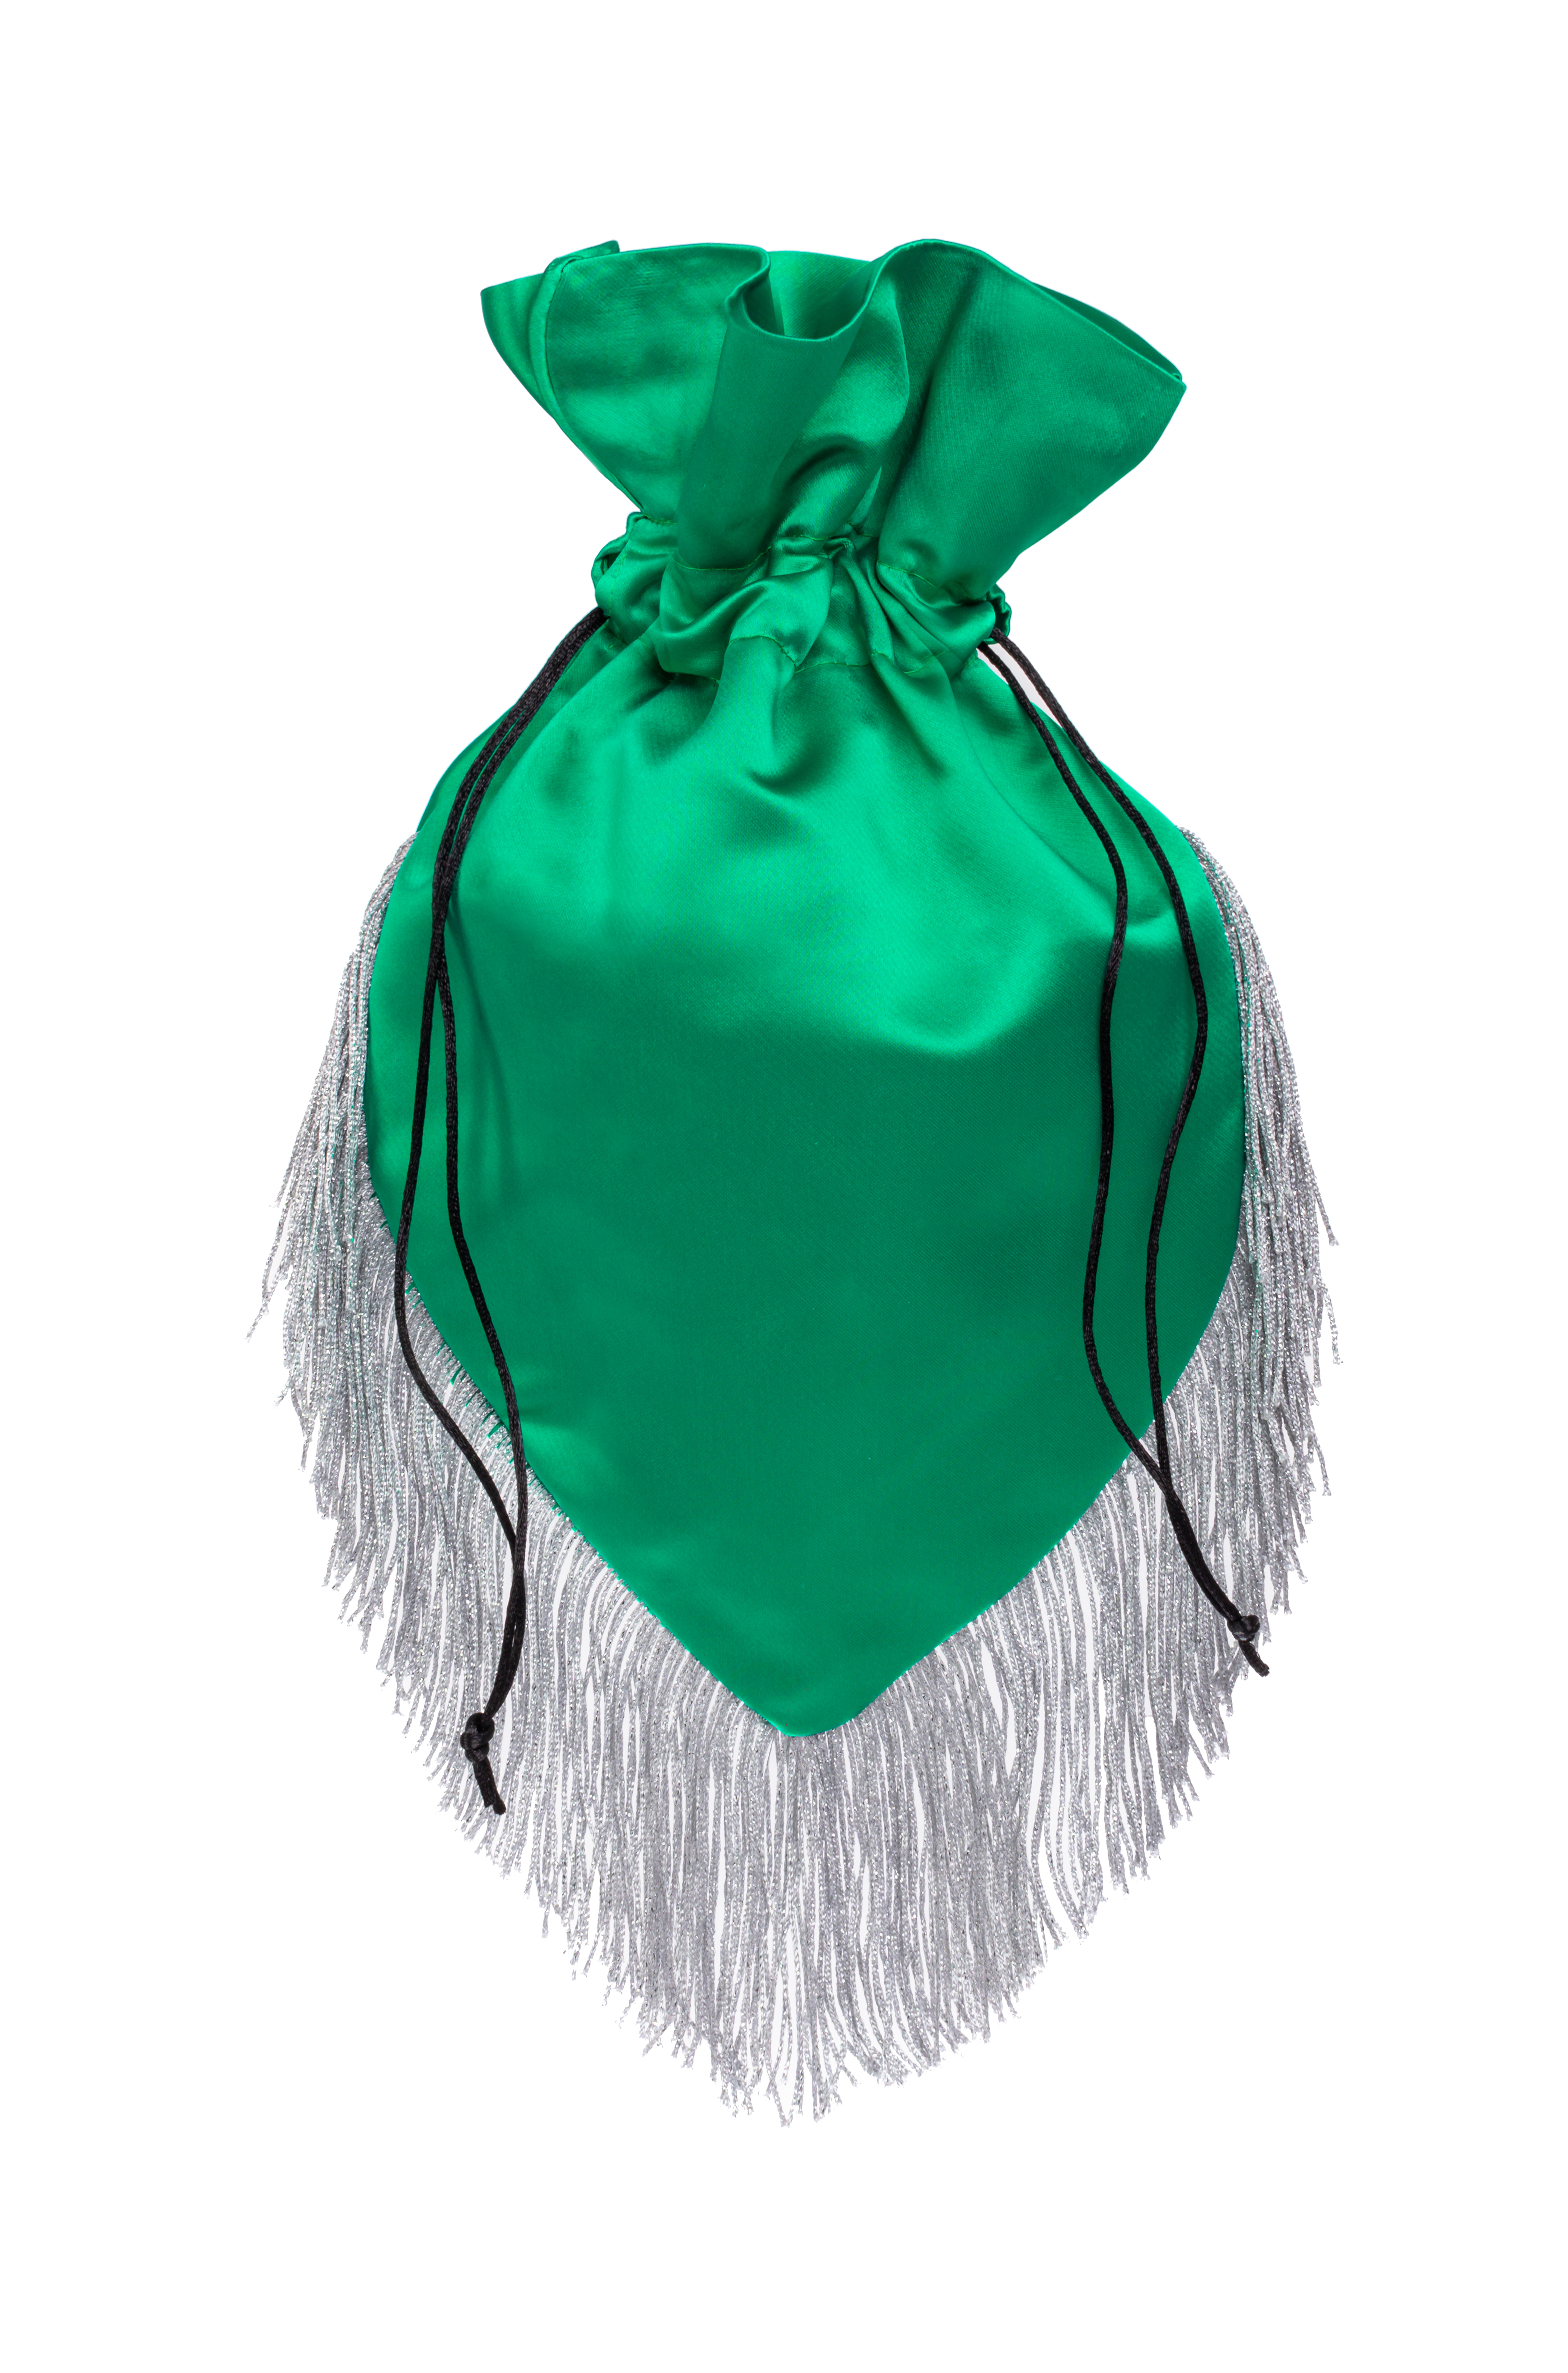 Emerald pouch with silver fringe